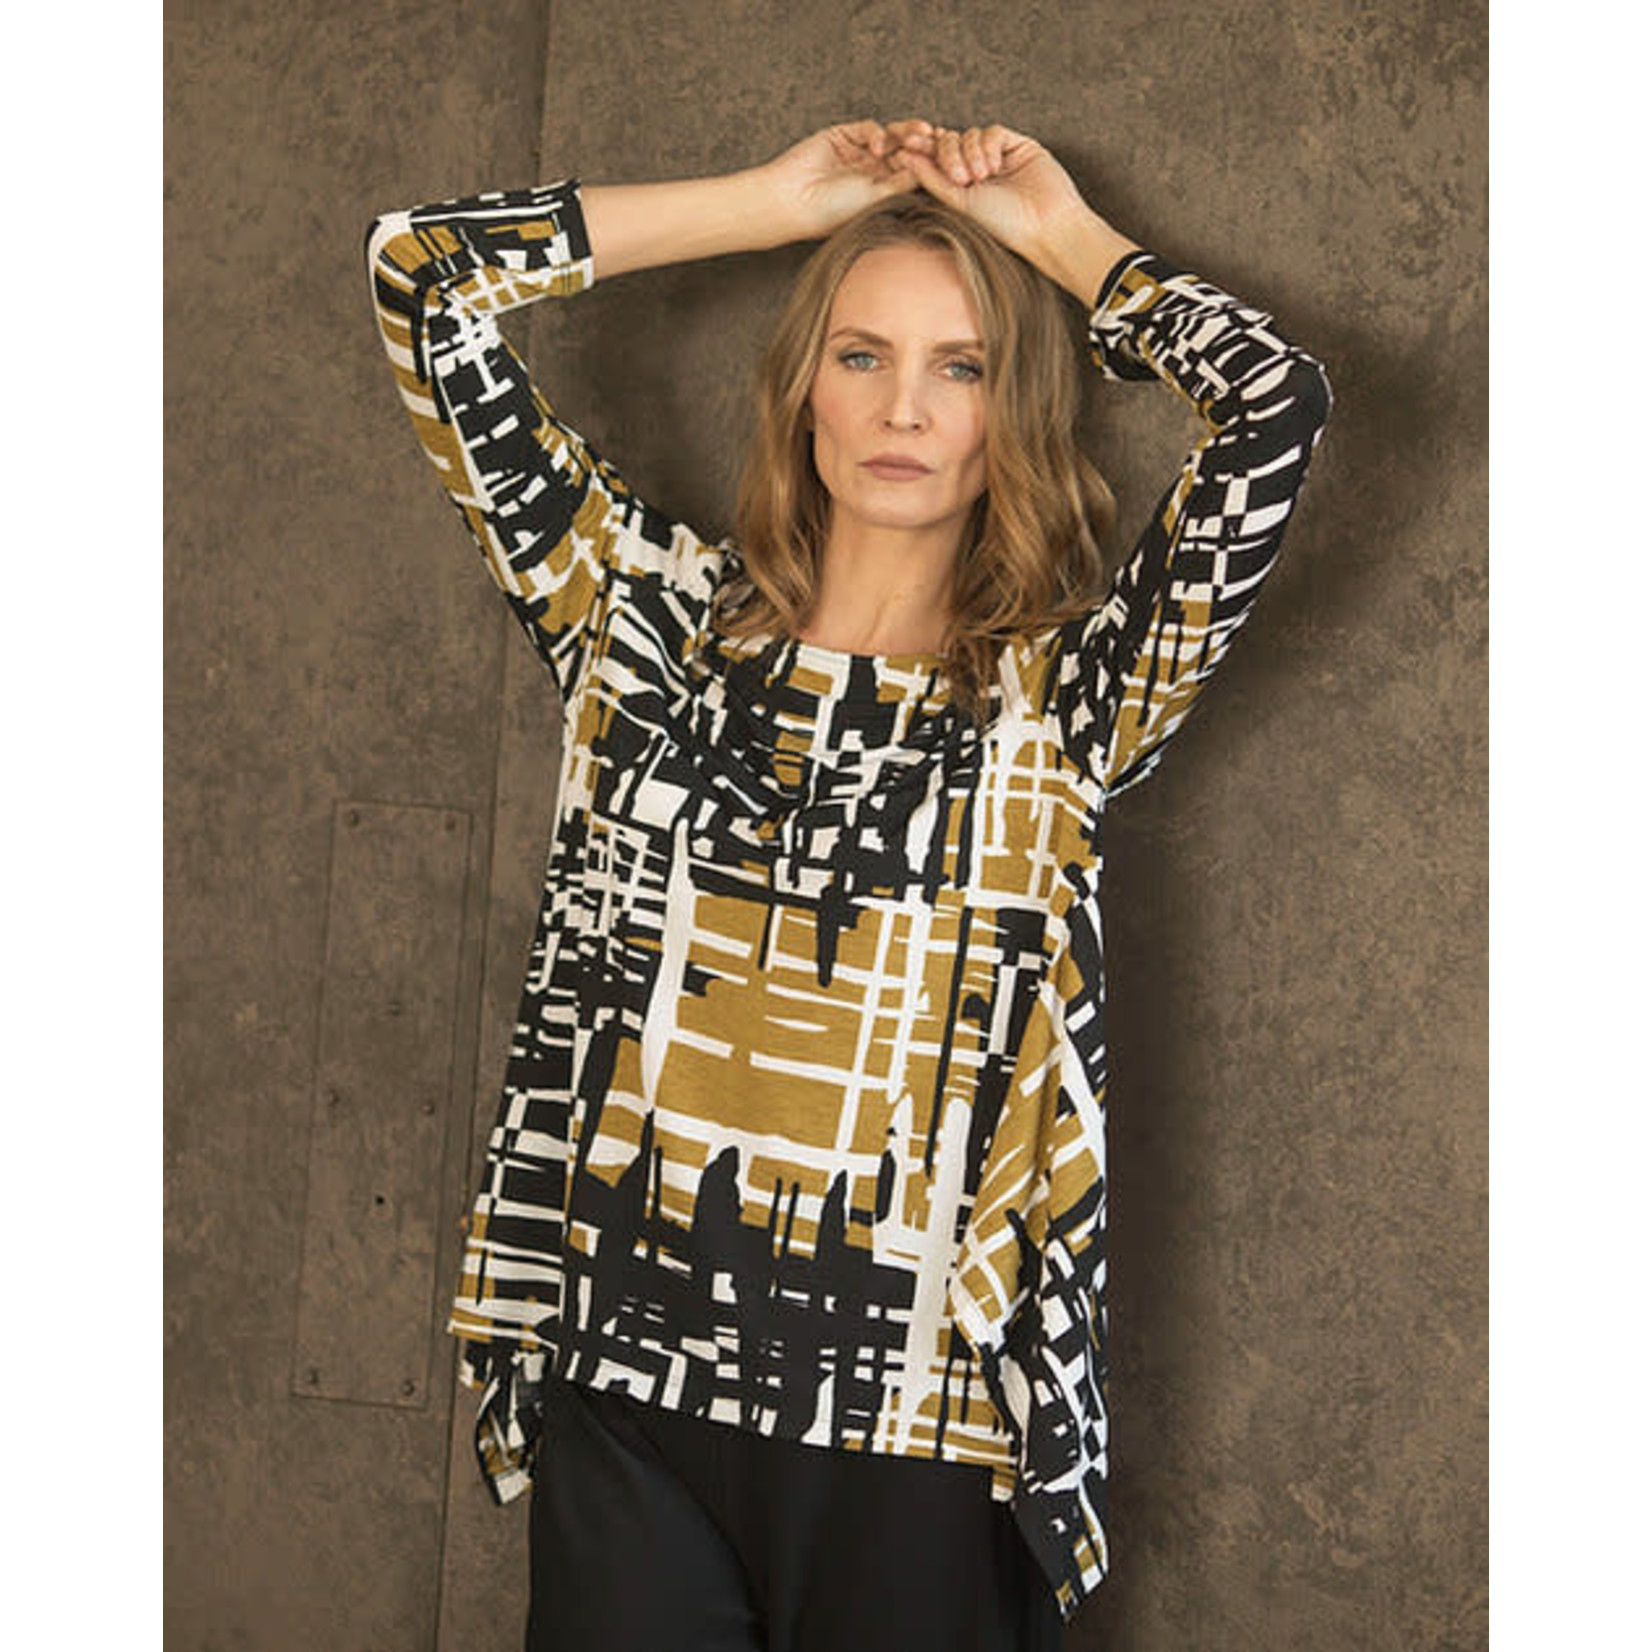 Chalet et ceci Reanna Top w/ Bell Hemline in Olive and White Hash Print